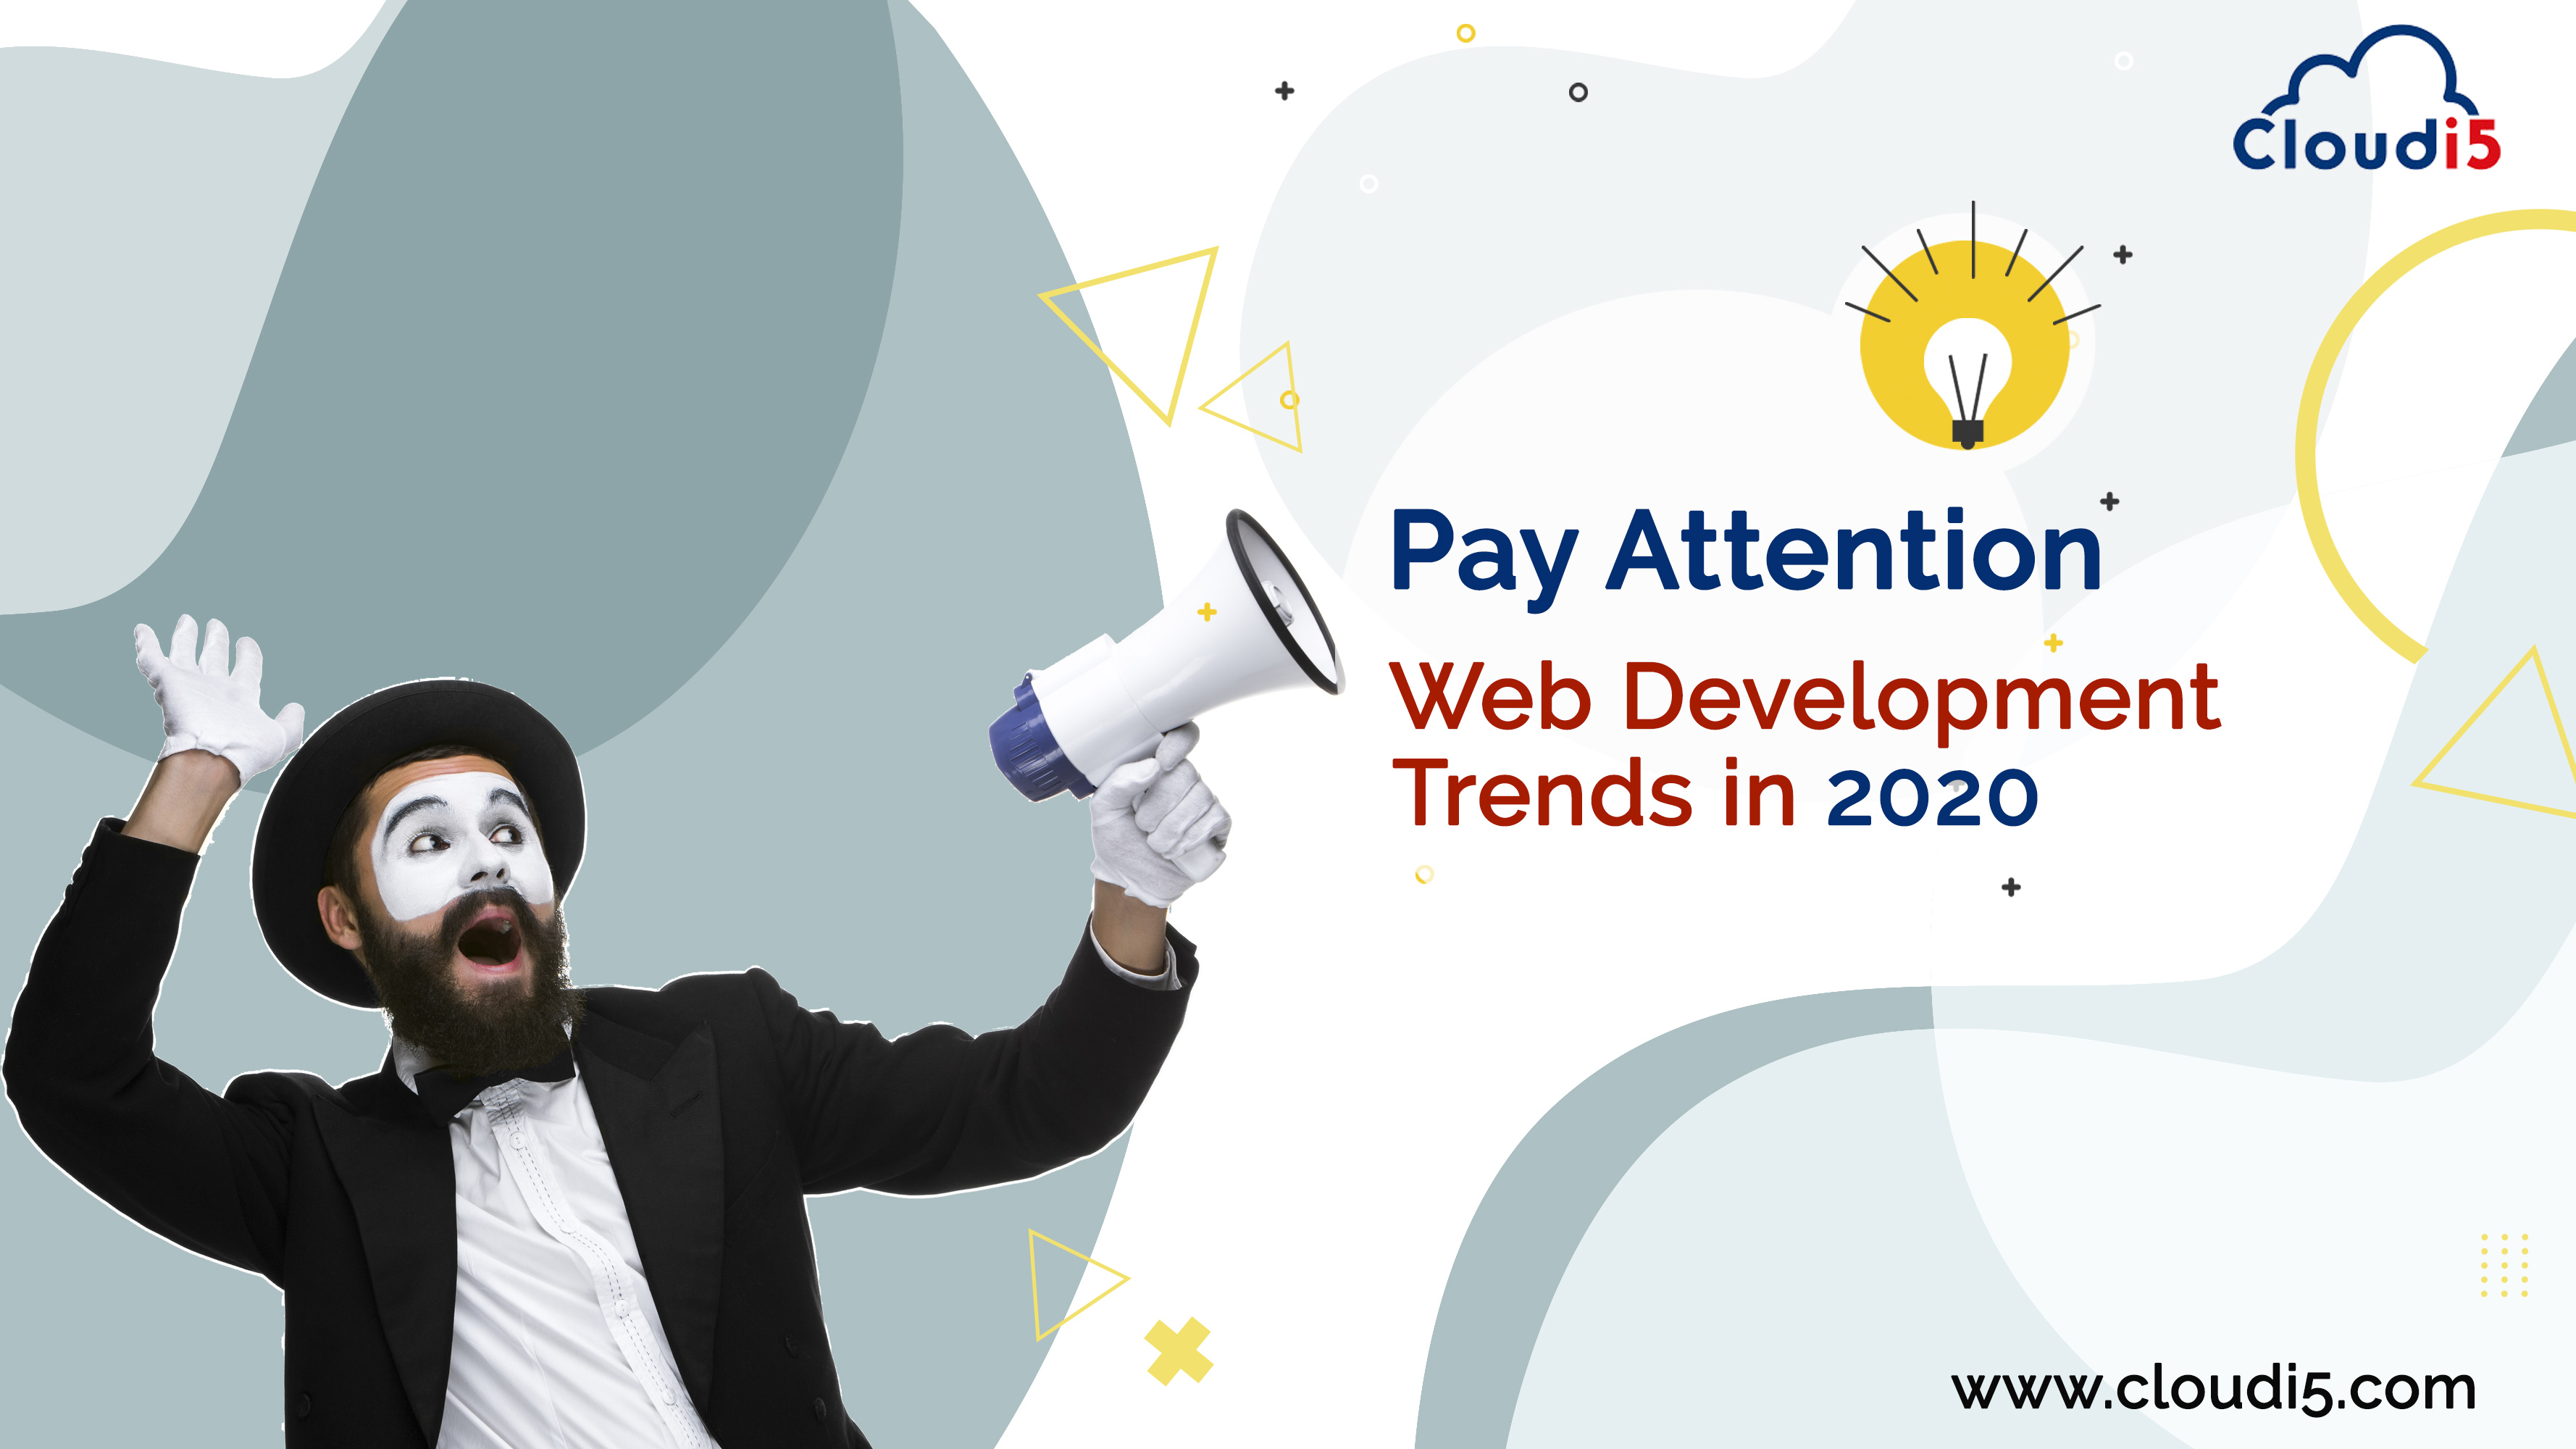 Pay attention to these web development trends in 2020